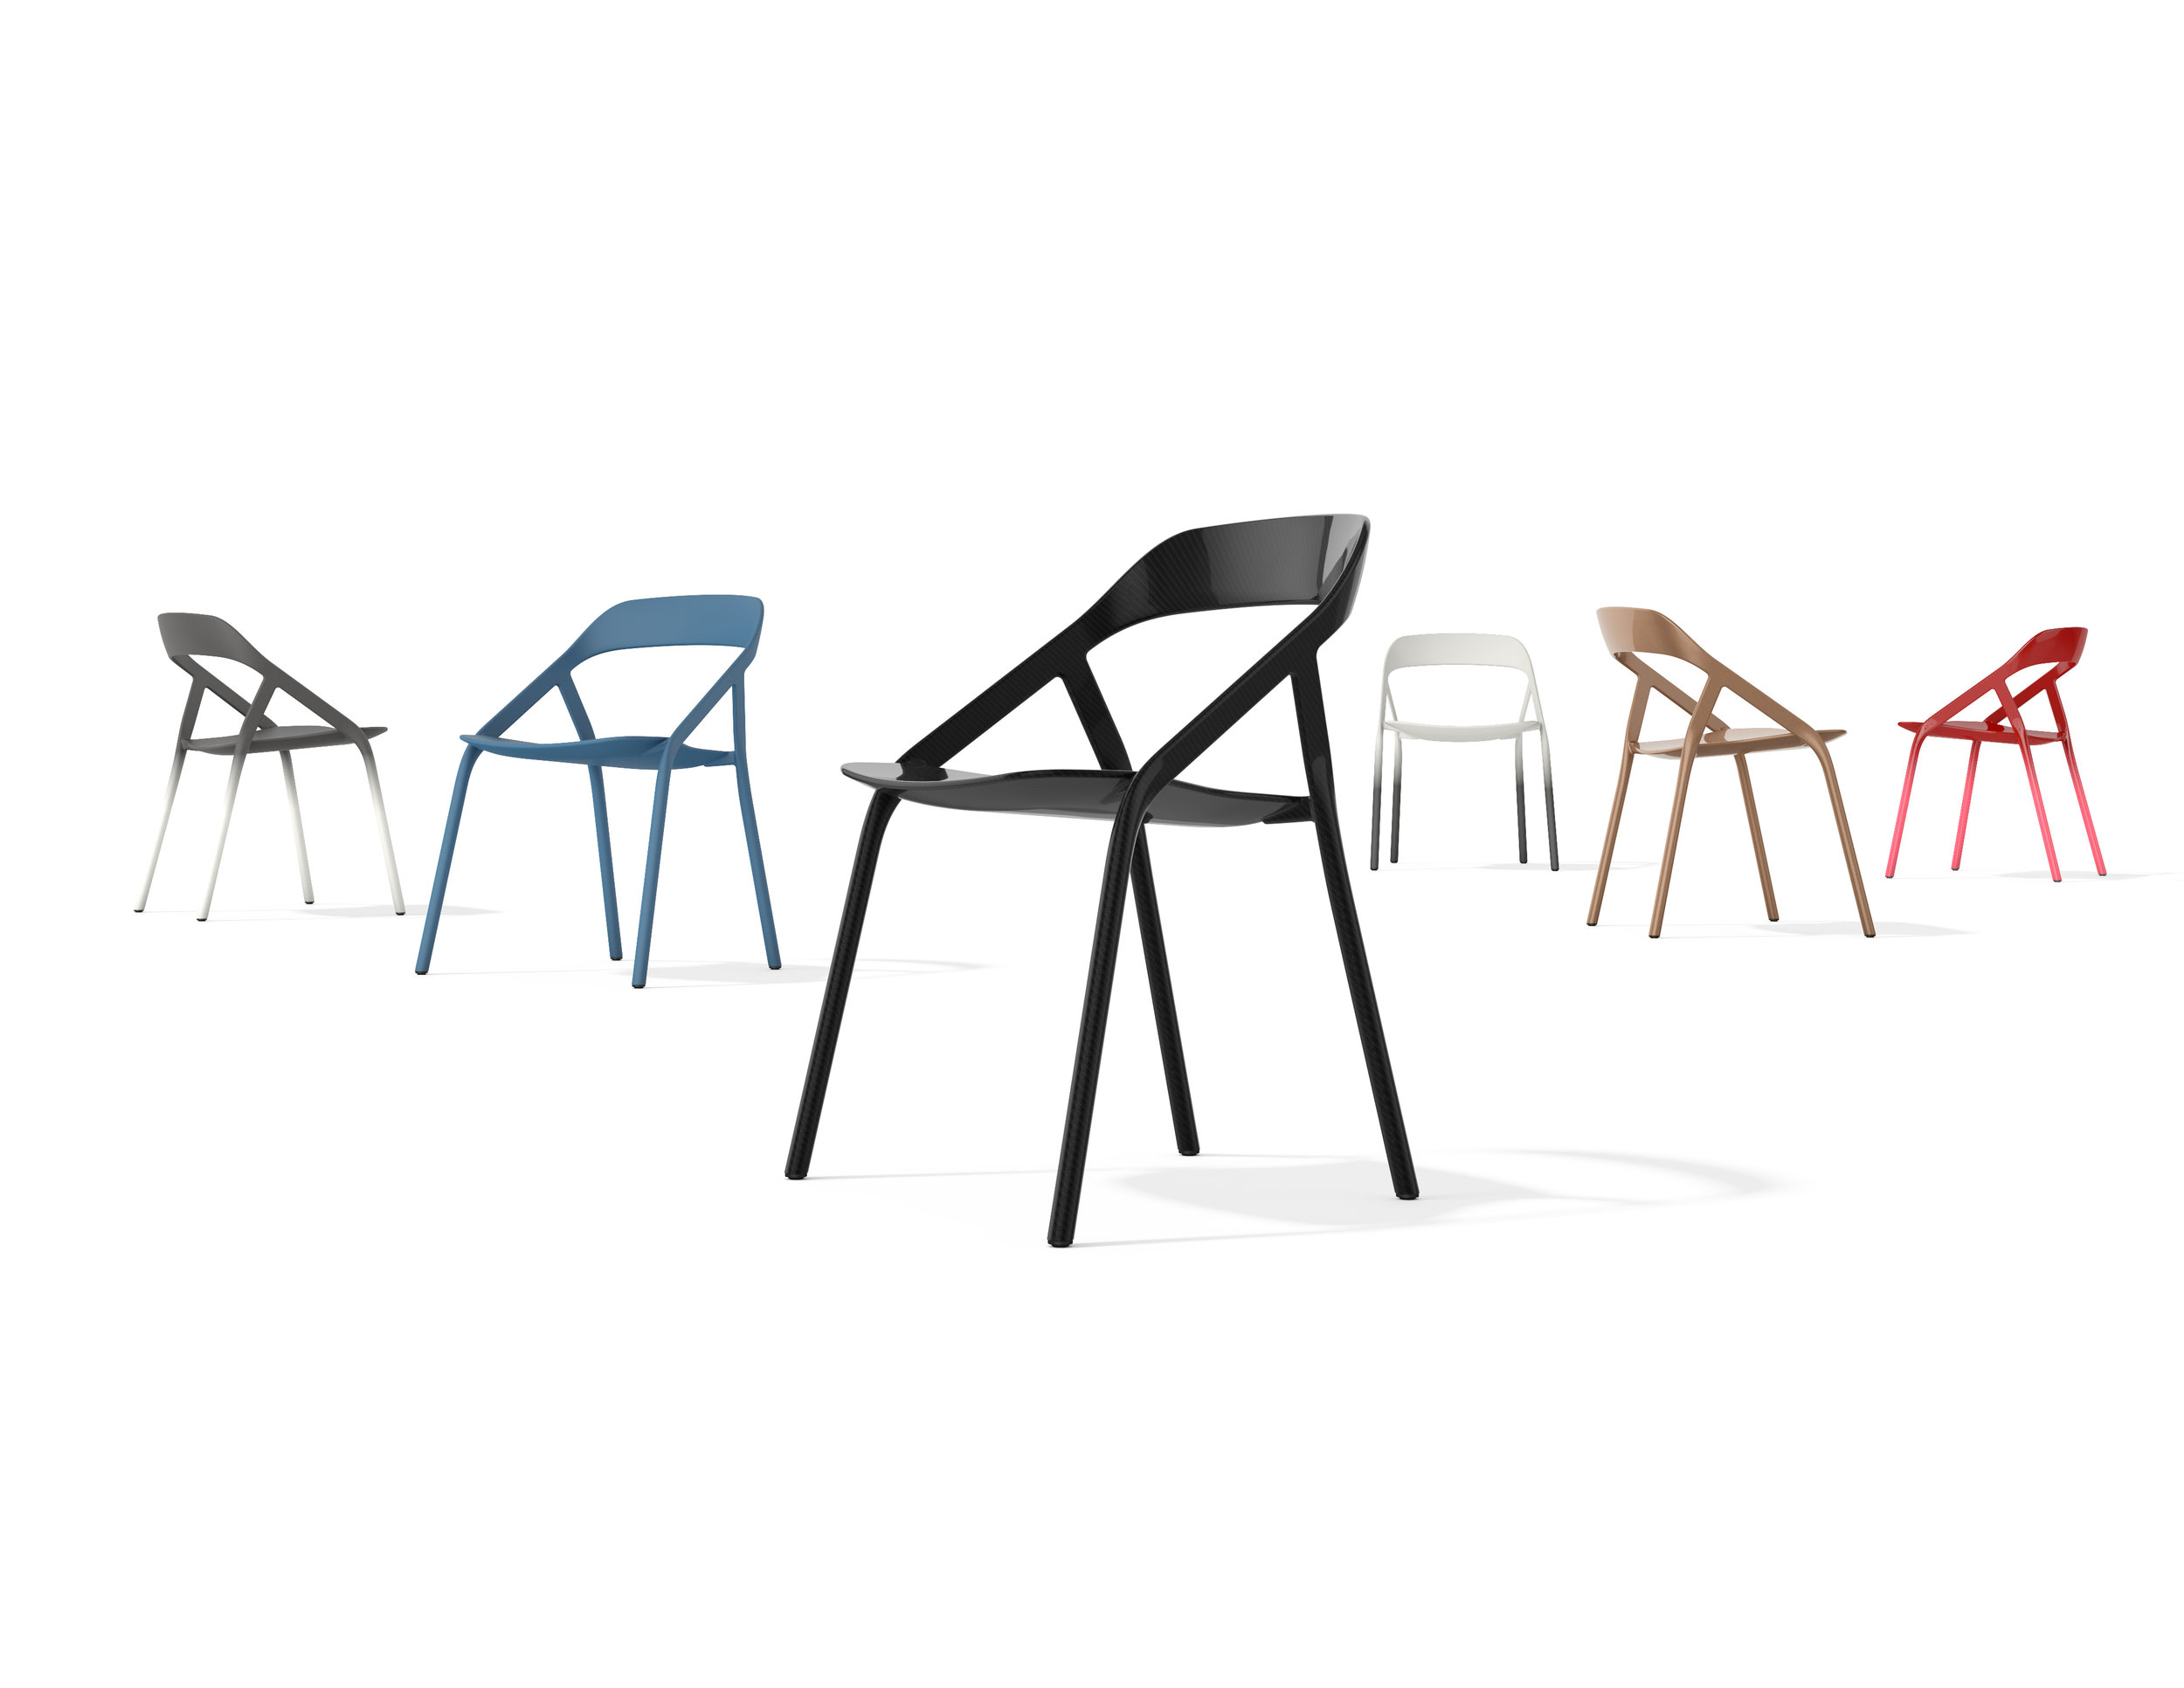 Michael Young's 'LessThanFive' chair for Coalesse, 2014. Available in several colours the name refers to t he weight - less than 5lbs,or 2.3kgs.